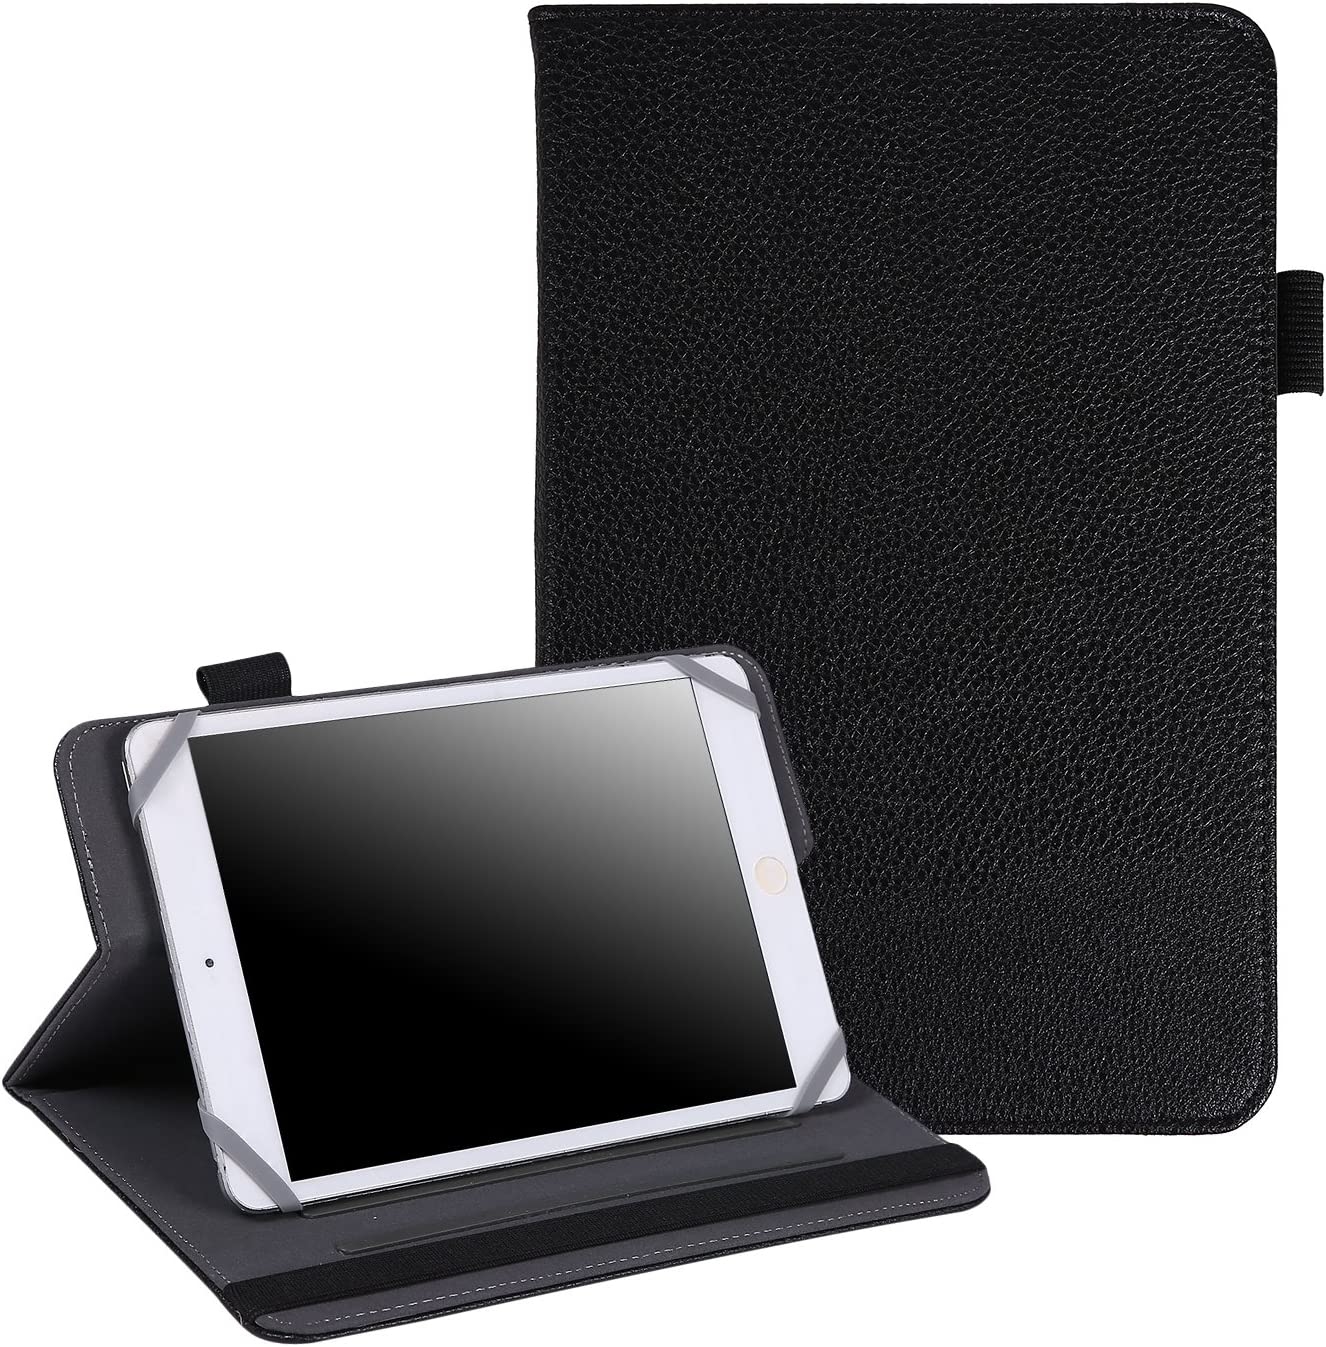 "HDE 7""-8"" Tablet Case Universal Protective Folio Stand Cover for iPad Mini 7-8"" Touchscreen Tablets (Black)"